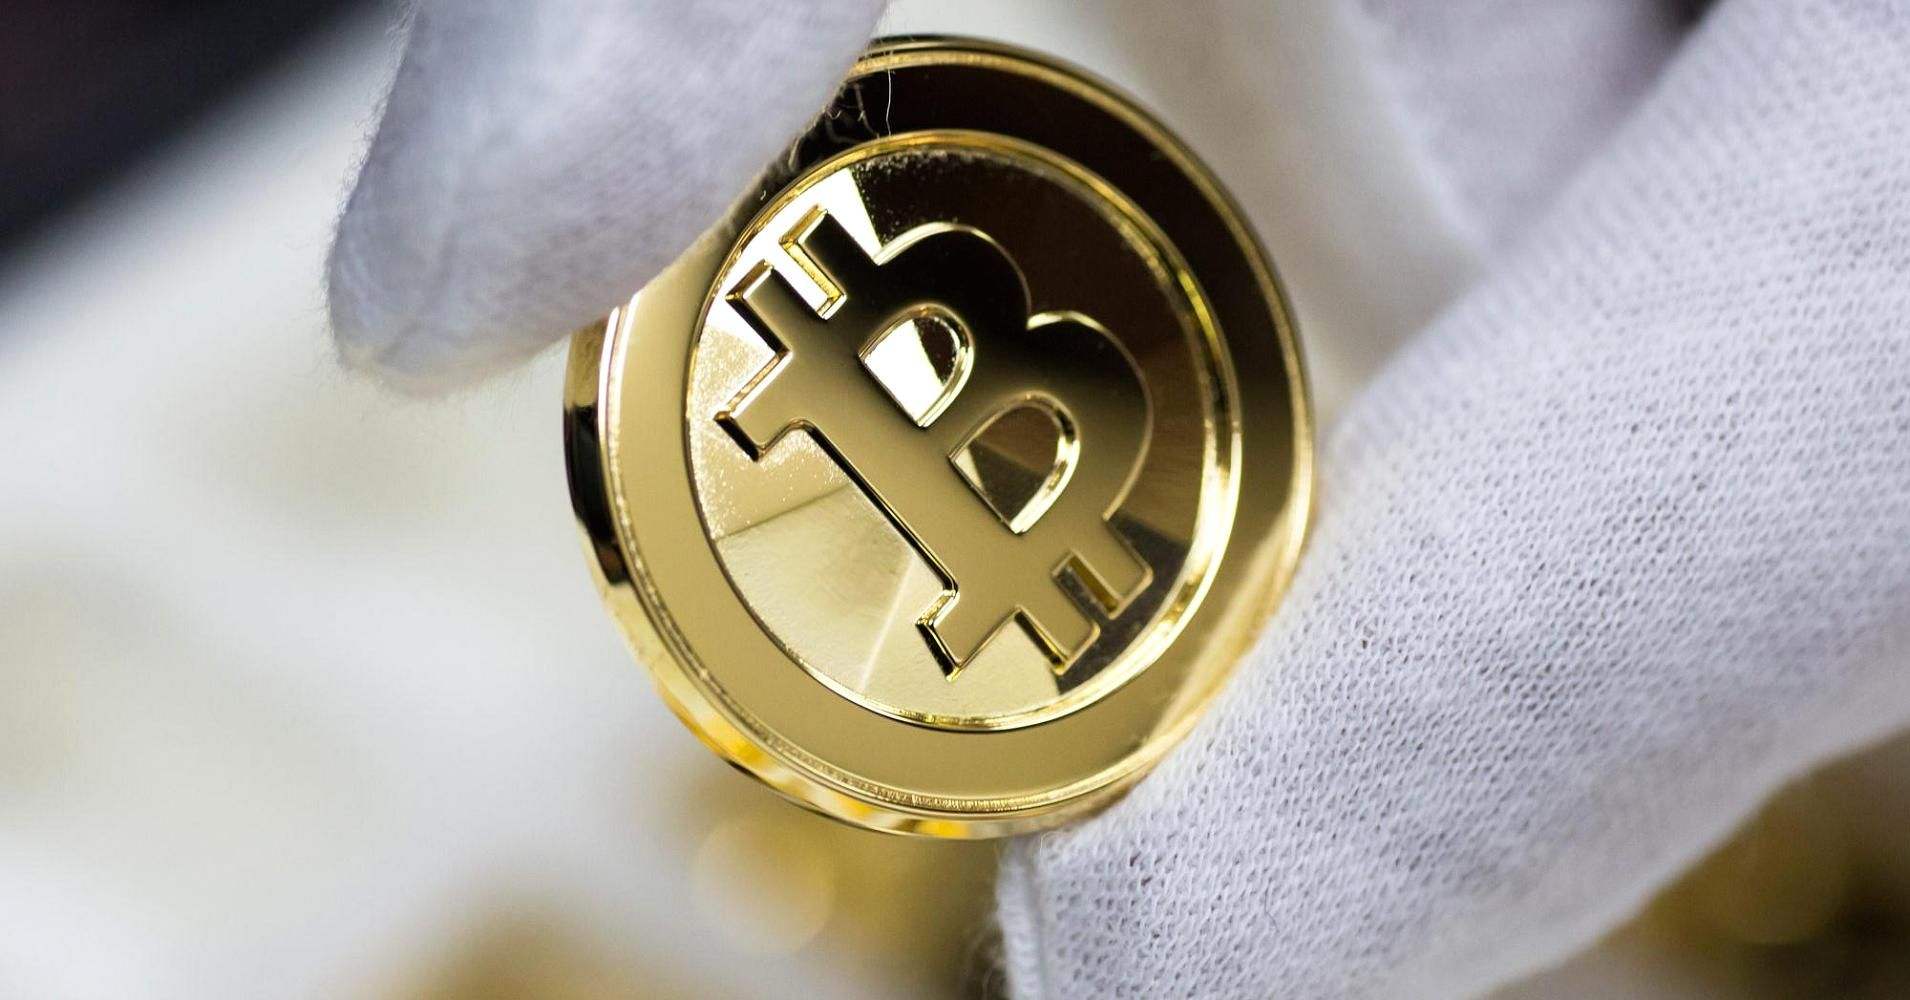 Selfproclaimed bitcoin creator sued for allegedly